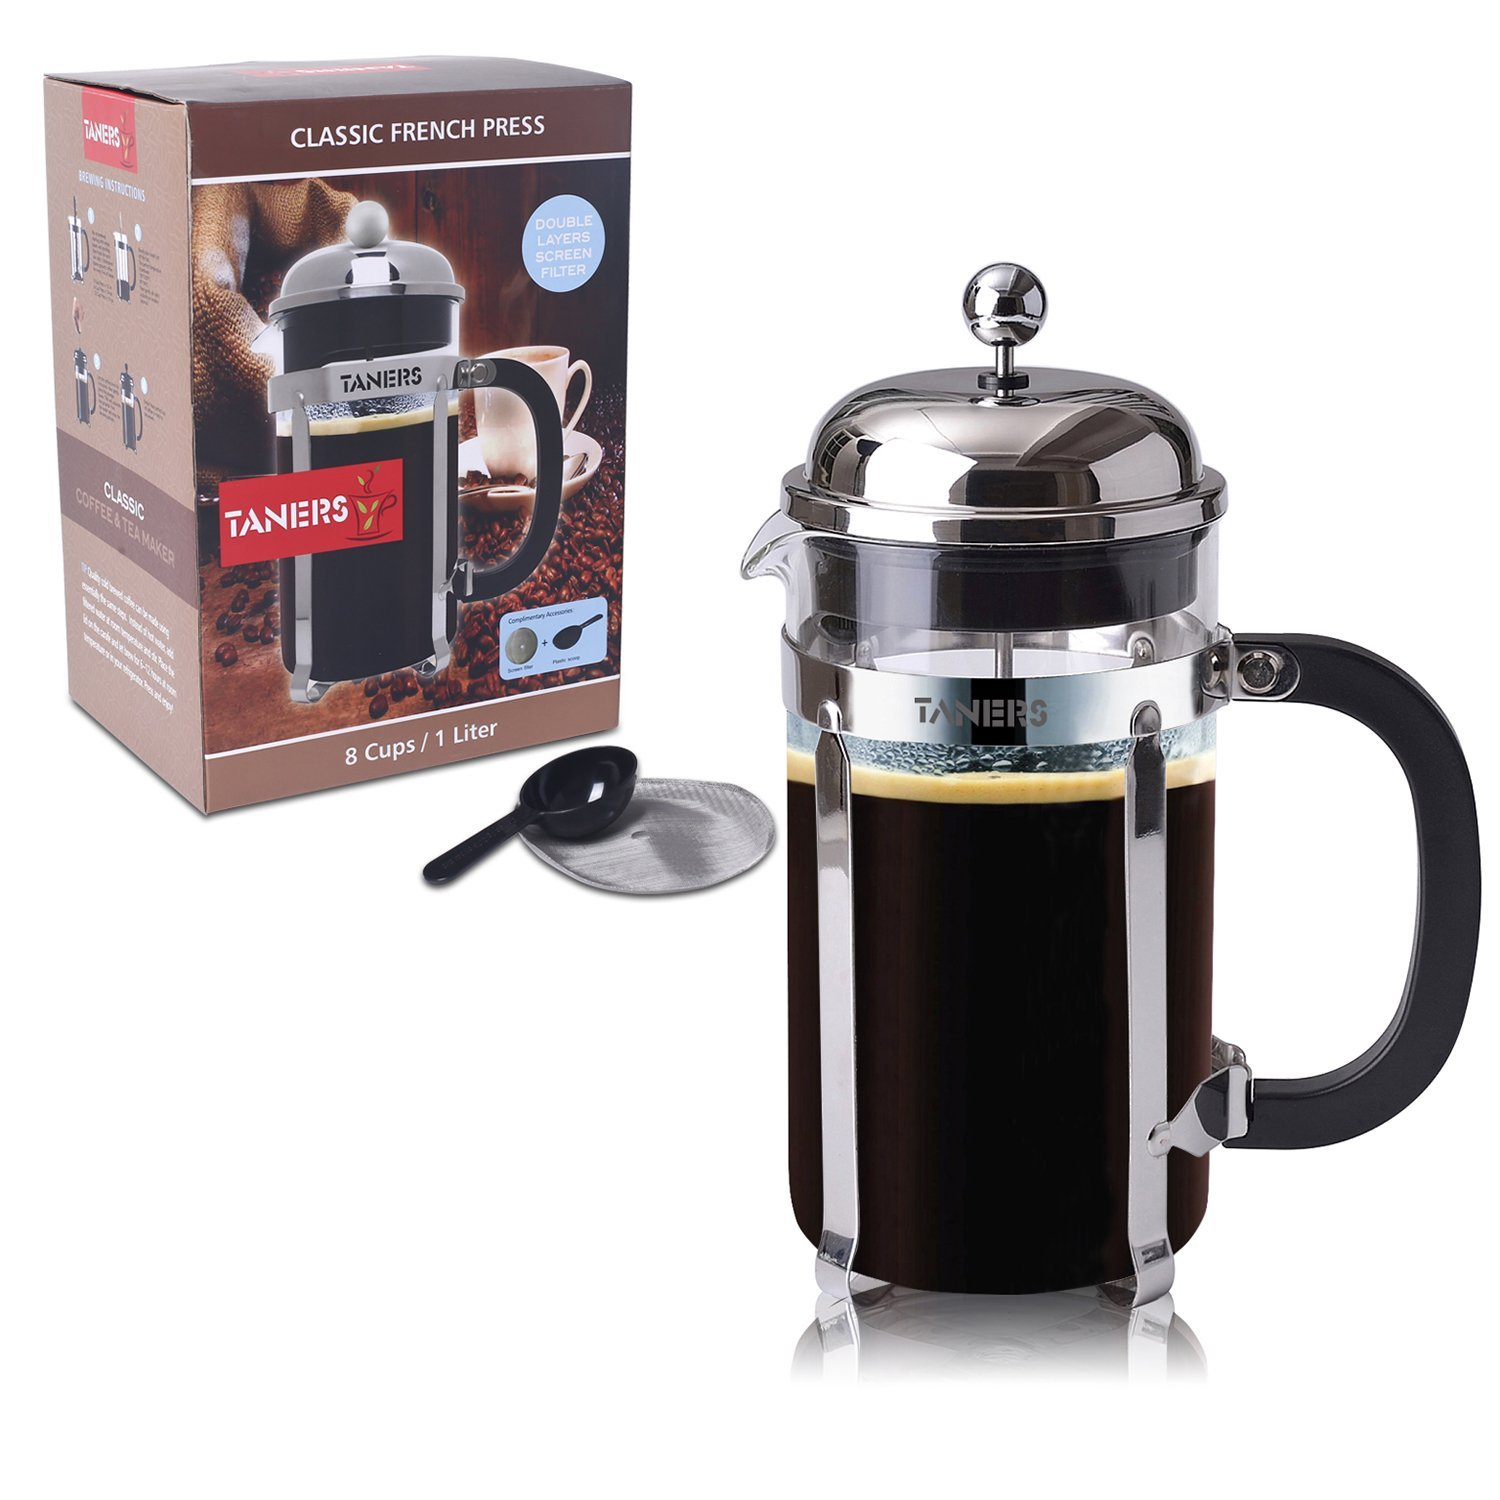 TANERS French Press 8 cup/34oz Coffee, Espresso & Tea Maker,Stainless Steel Coffee Press Filter, BONUS Extra Dual Layer Filter &Scoop & Elegant Gift Box